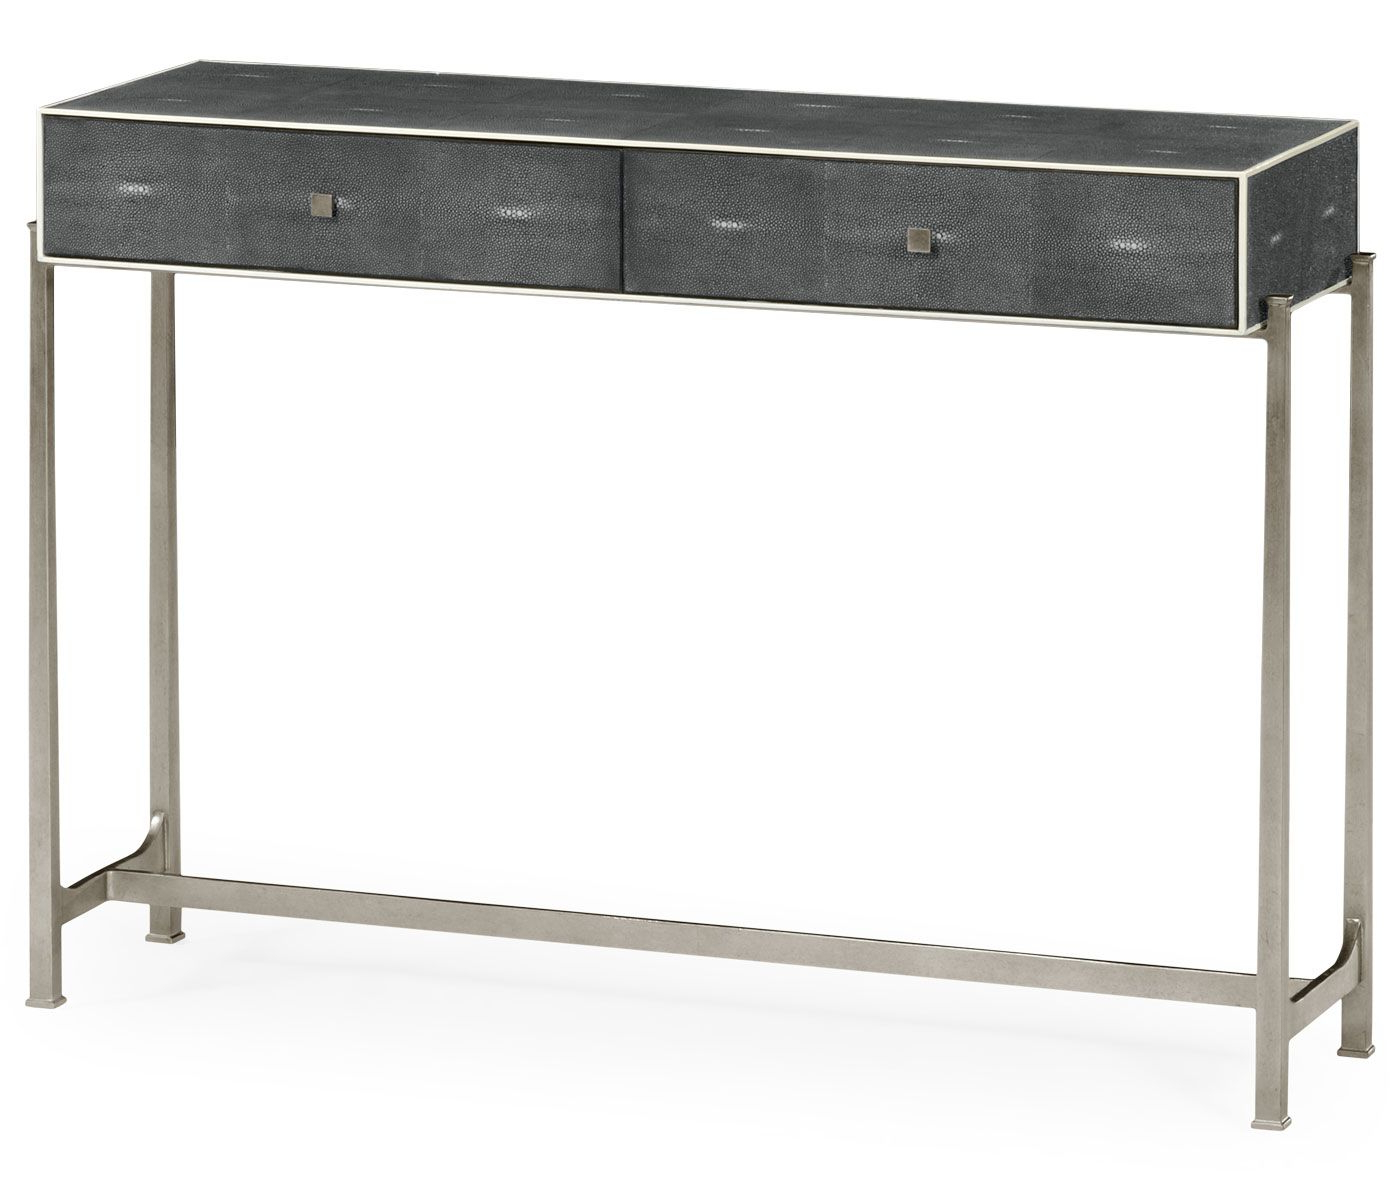 Faux Anthracite Shagreen Console With Silver Base | Santana Inside Faux Shagreen Console Tables (Gallery 13 of 20)